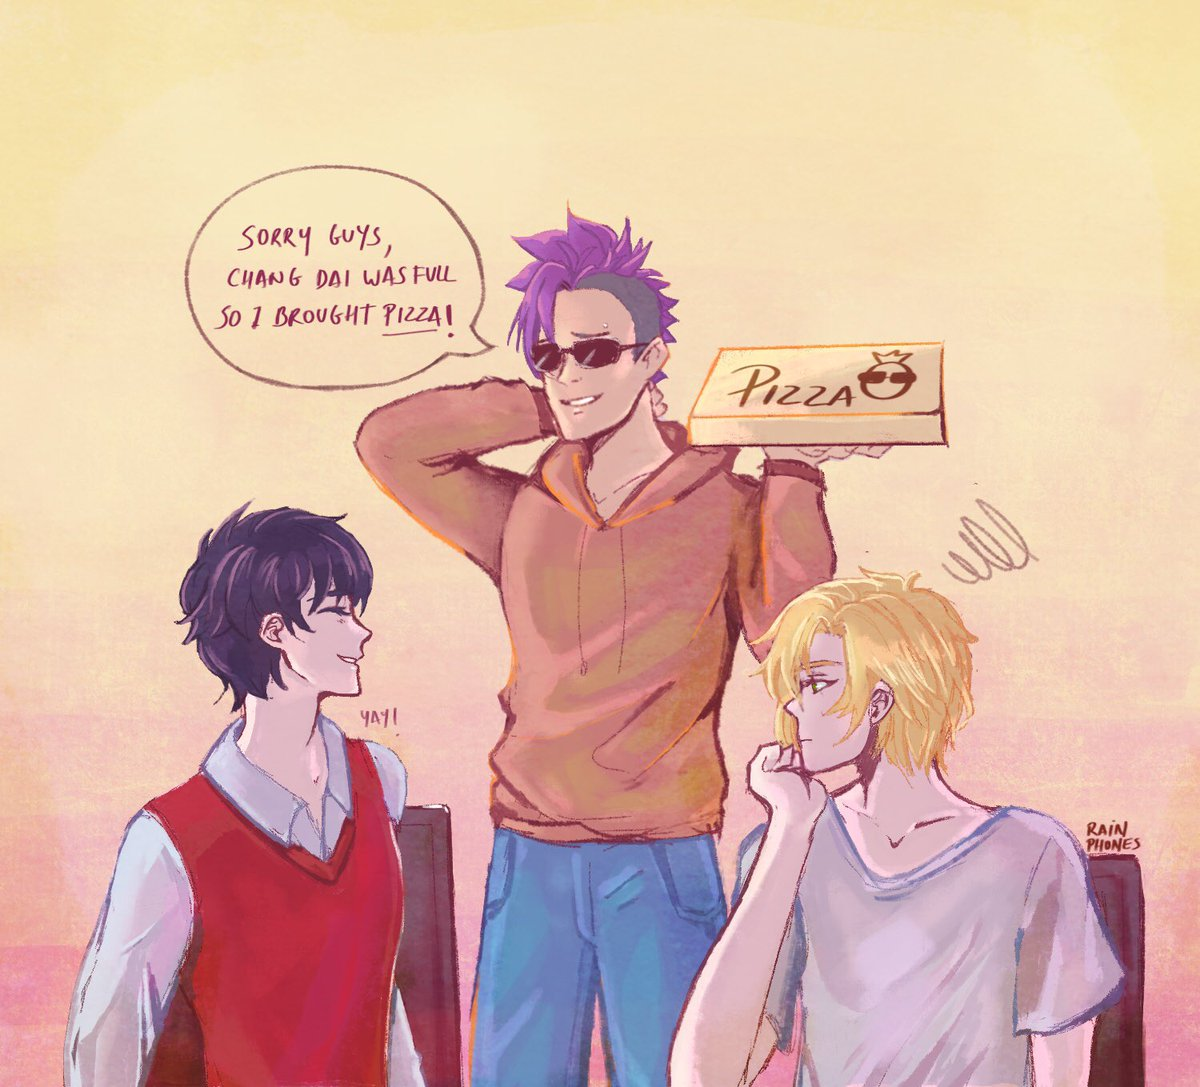 #BANANAFISH  Happy lunar new year!  The boys are having pizza to celebrate  <br>http://pic.twitter.com/AAjiXBbEzx